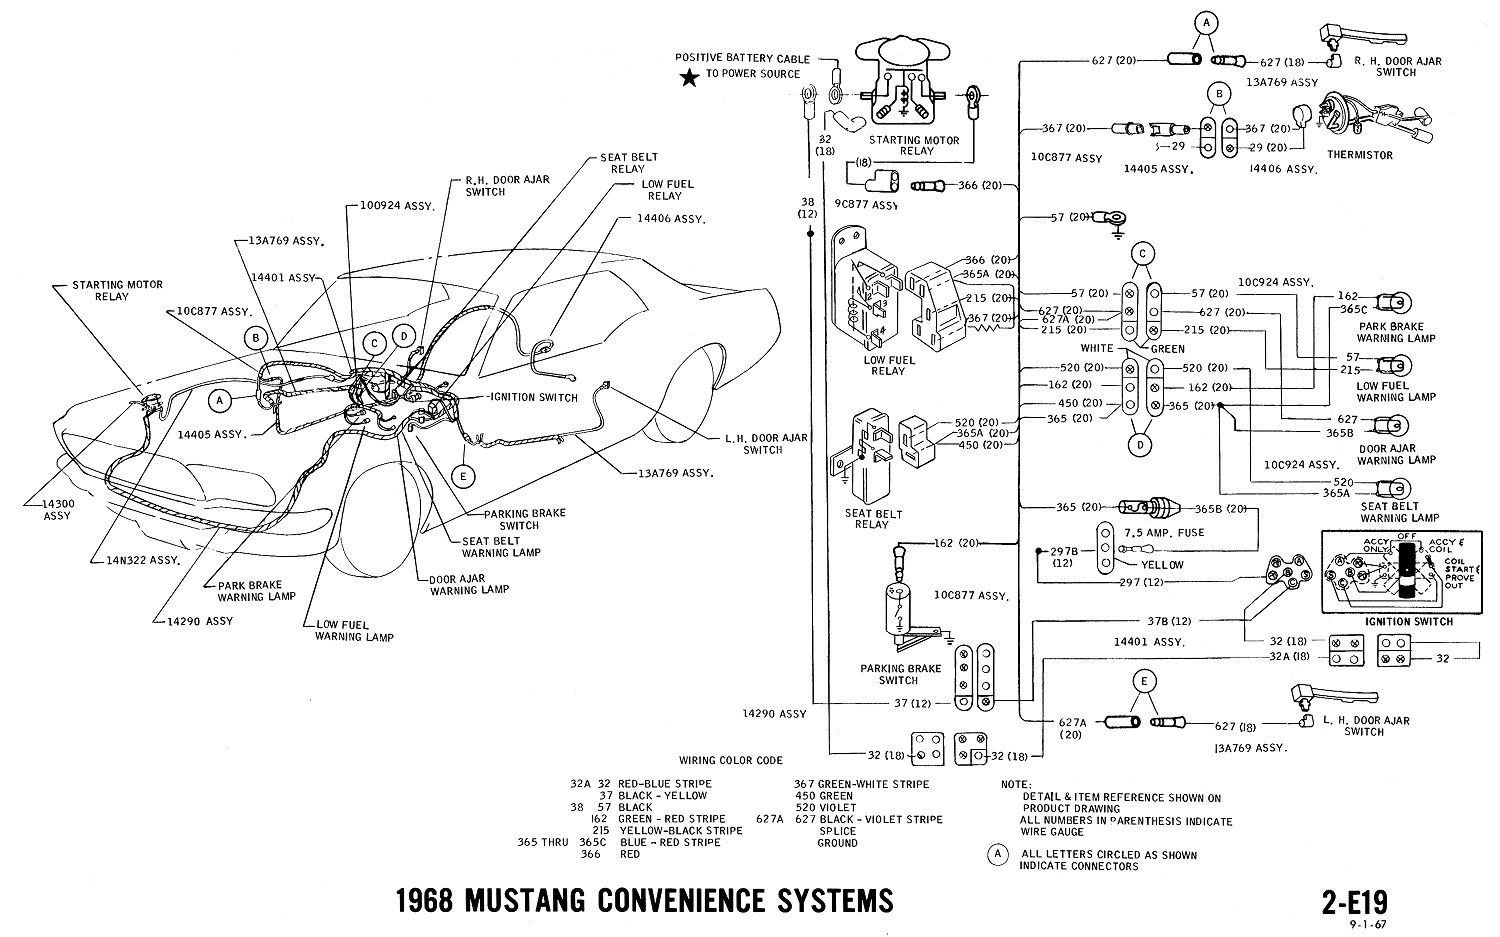 71 mustang wiring diagram for horn wiring diagram for horn 1967 mustang horn wiring diagram | schematic diagram - 126 ...